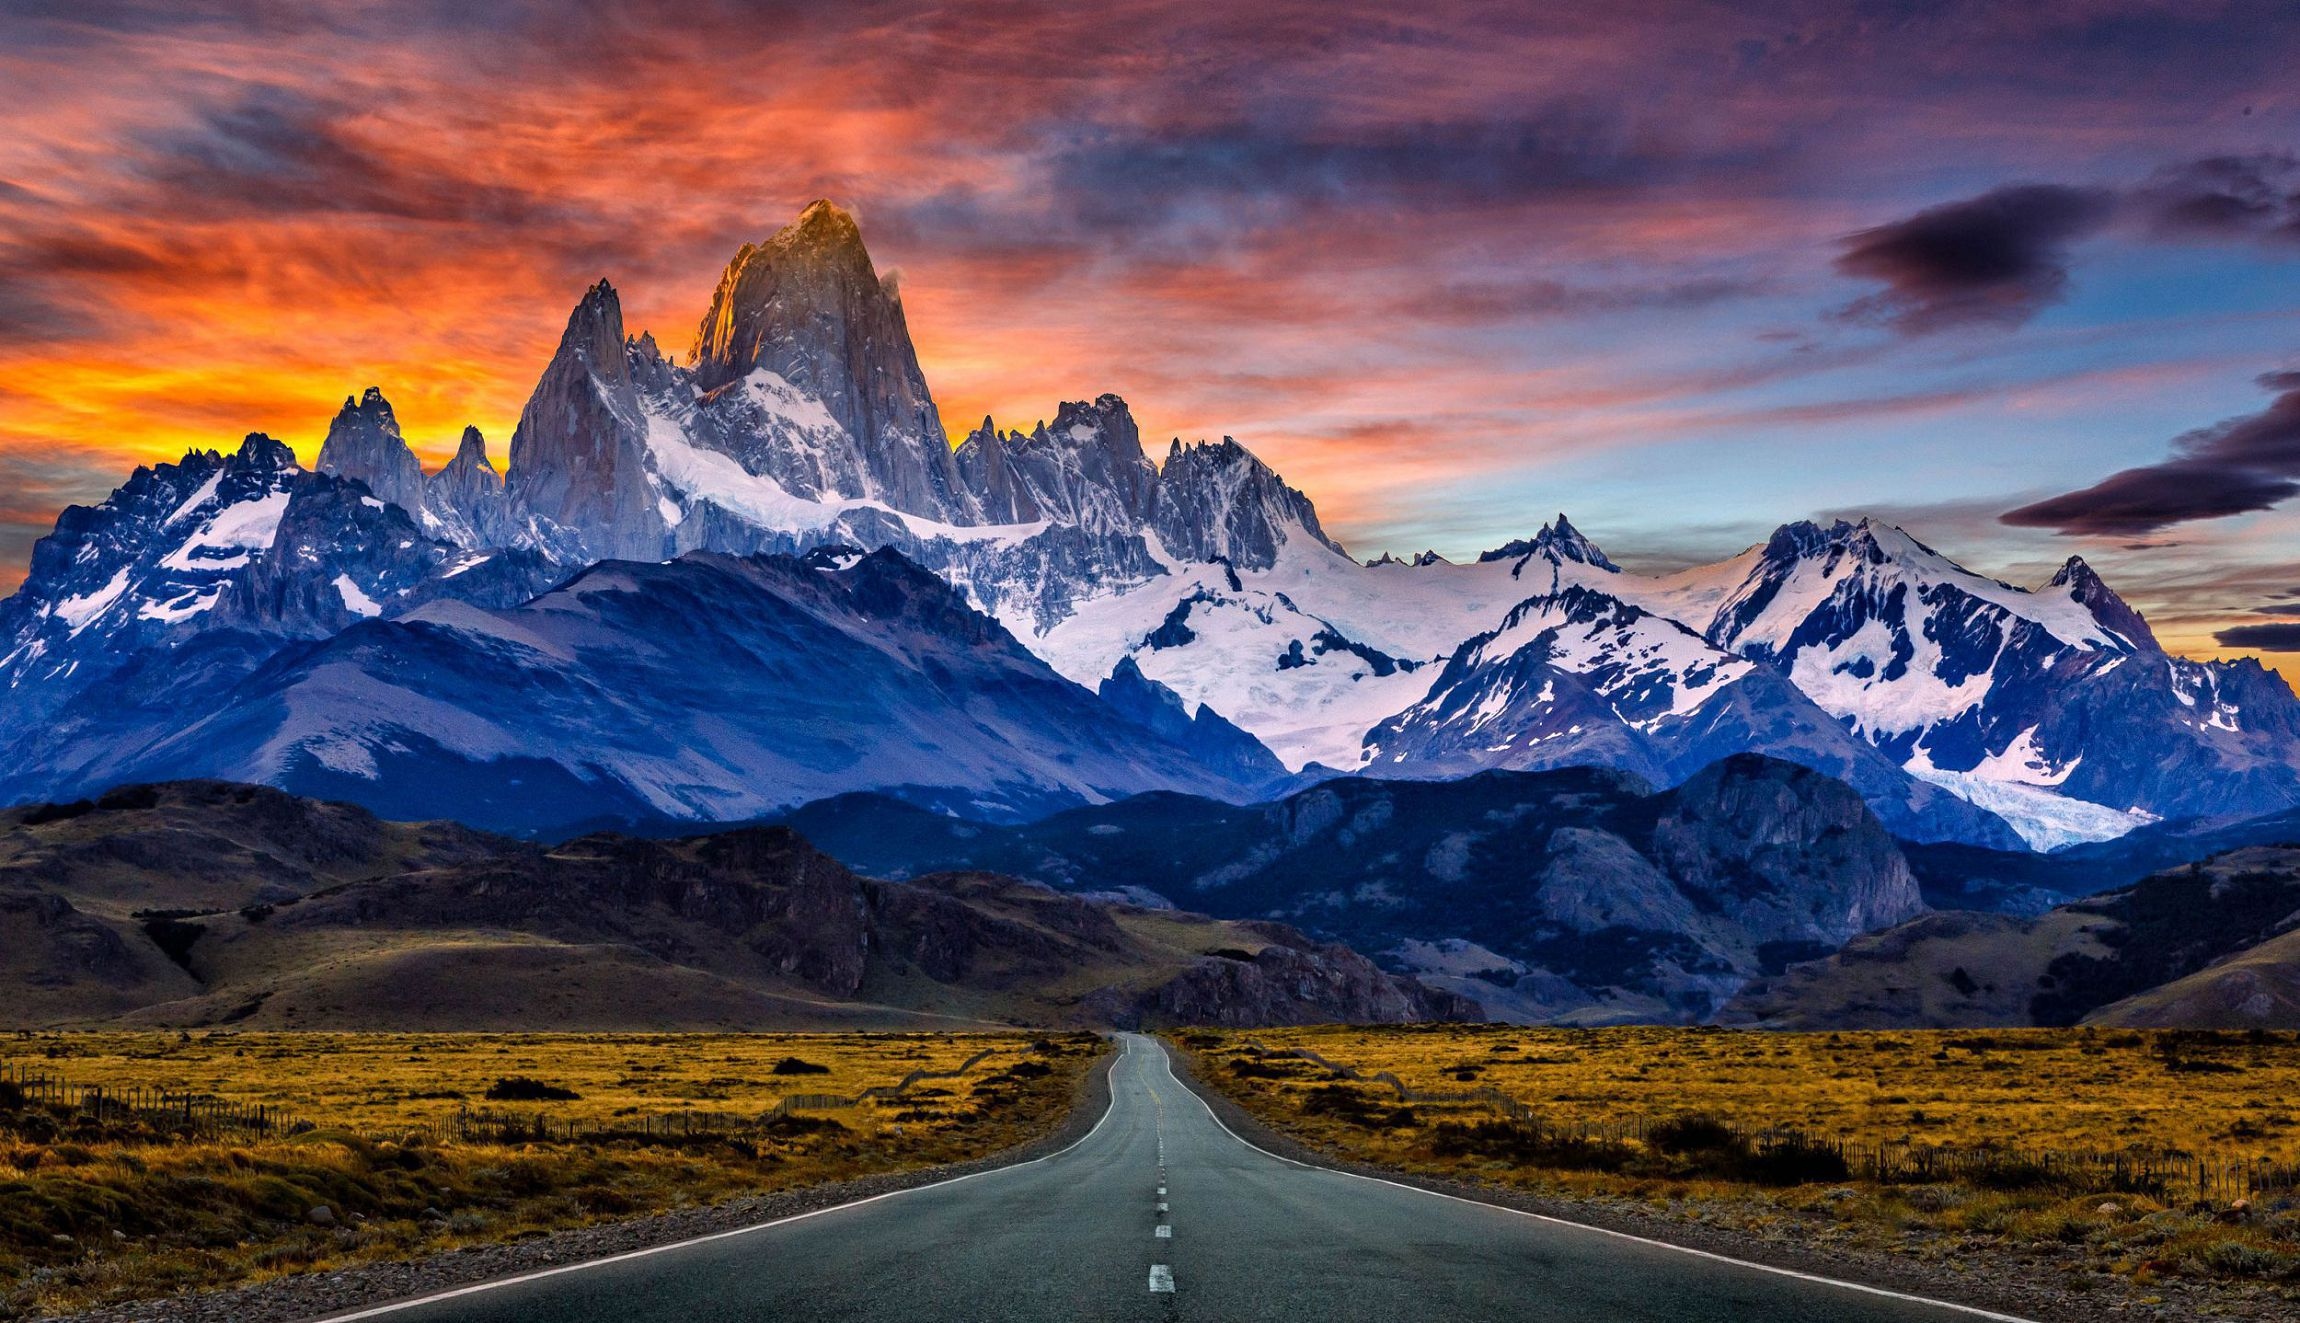 Towards Mount Fitz Roy In The Sunset